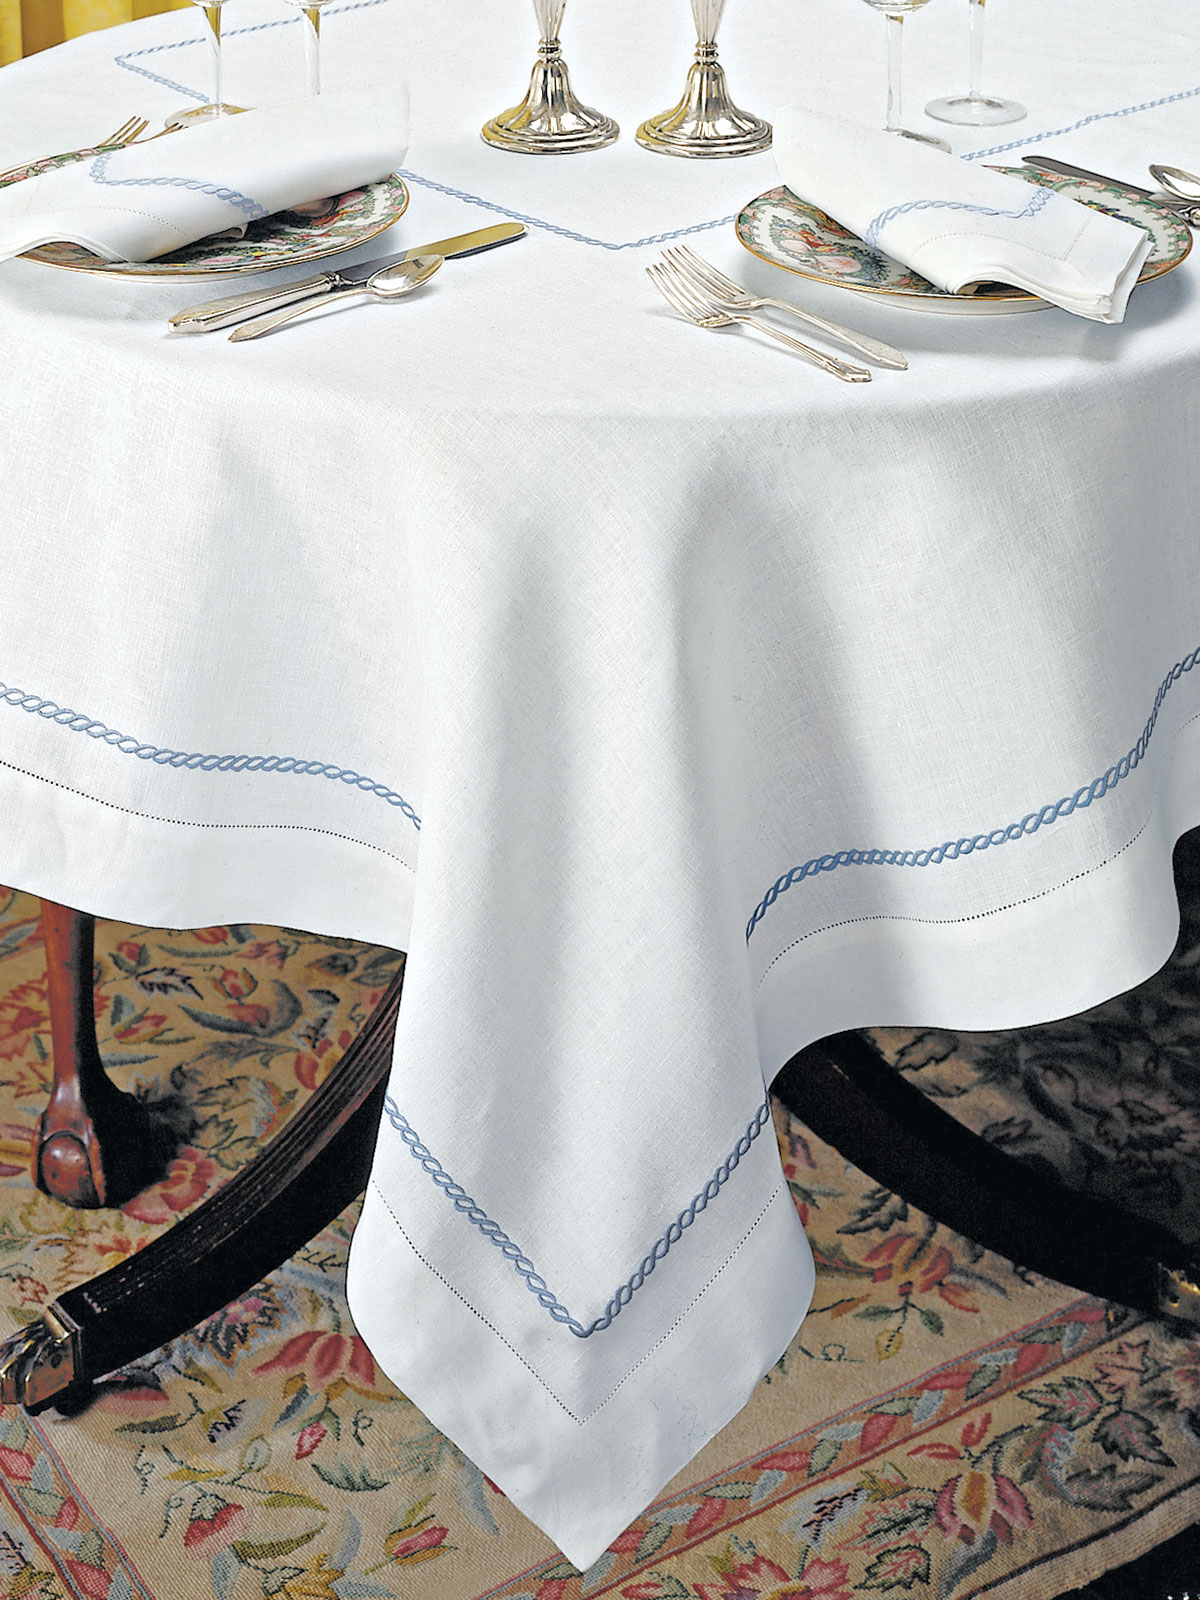 Sienne Scallops Too Luxury Table Cloths Fine Table  : TCSIENNESCALLOPSTOO from schweitzerlinen.com size 1200 x 1600 jpeg 411kB